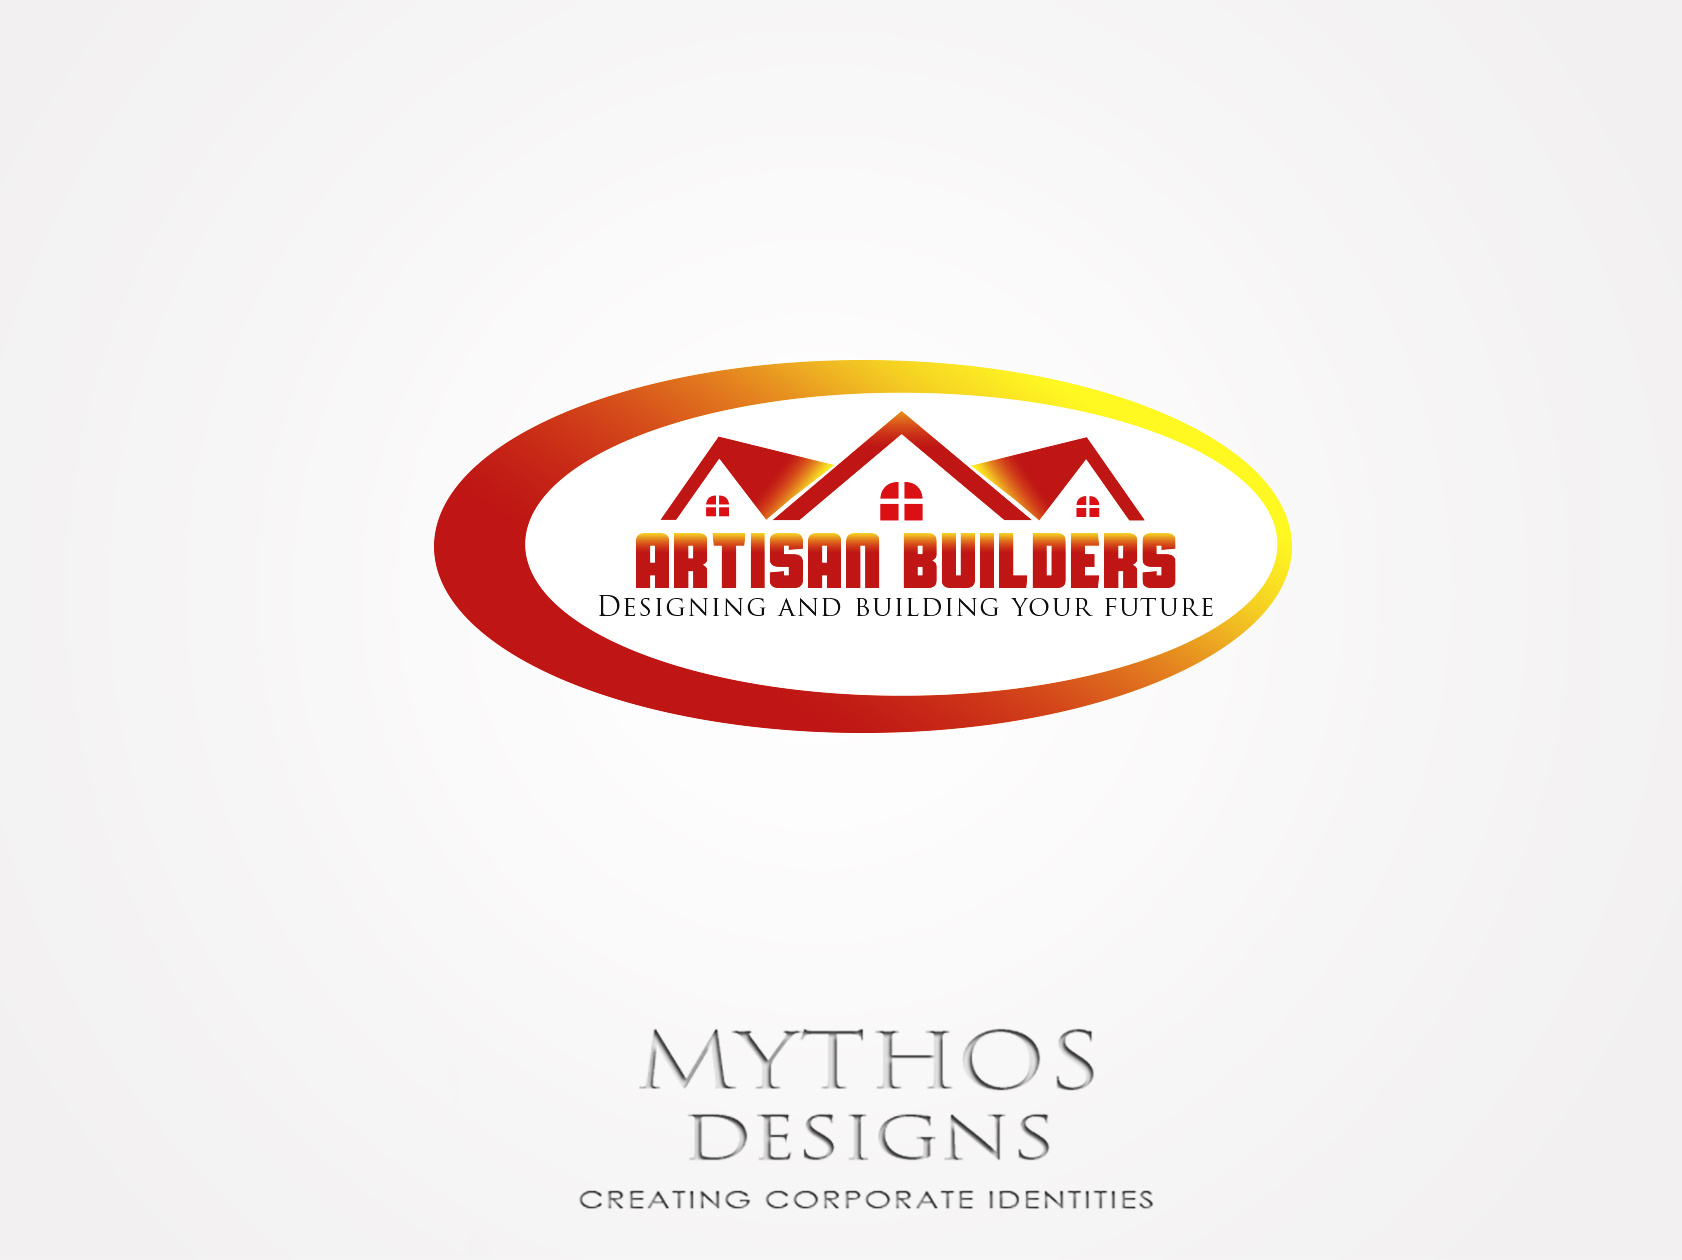 Logo Design by Mythos Designs - Entry No. 66 in the Logo Design Contest Captivating Logo Design for Artisan Builders.